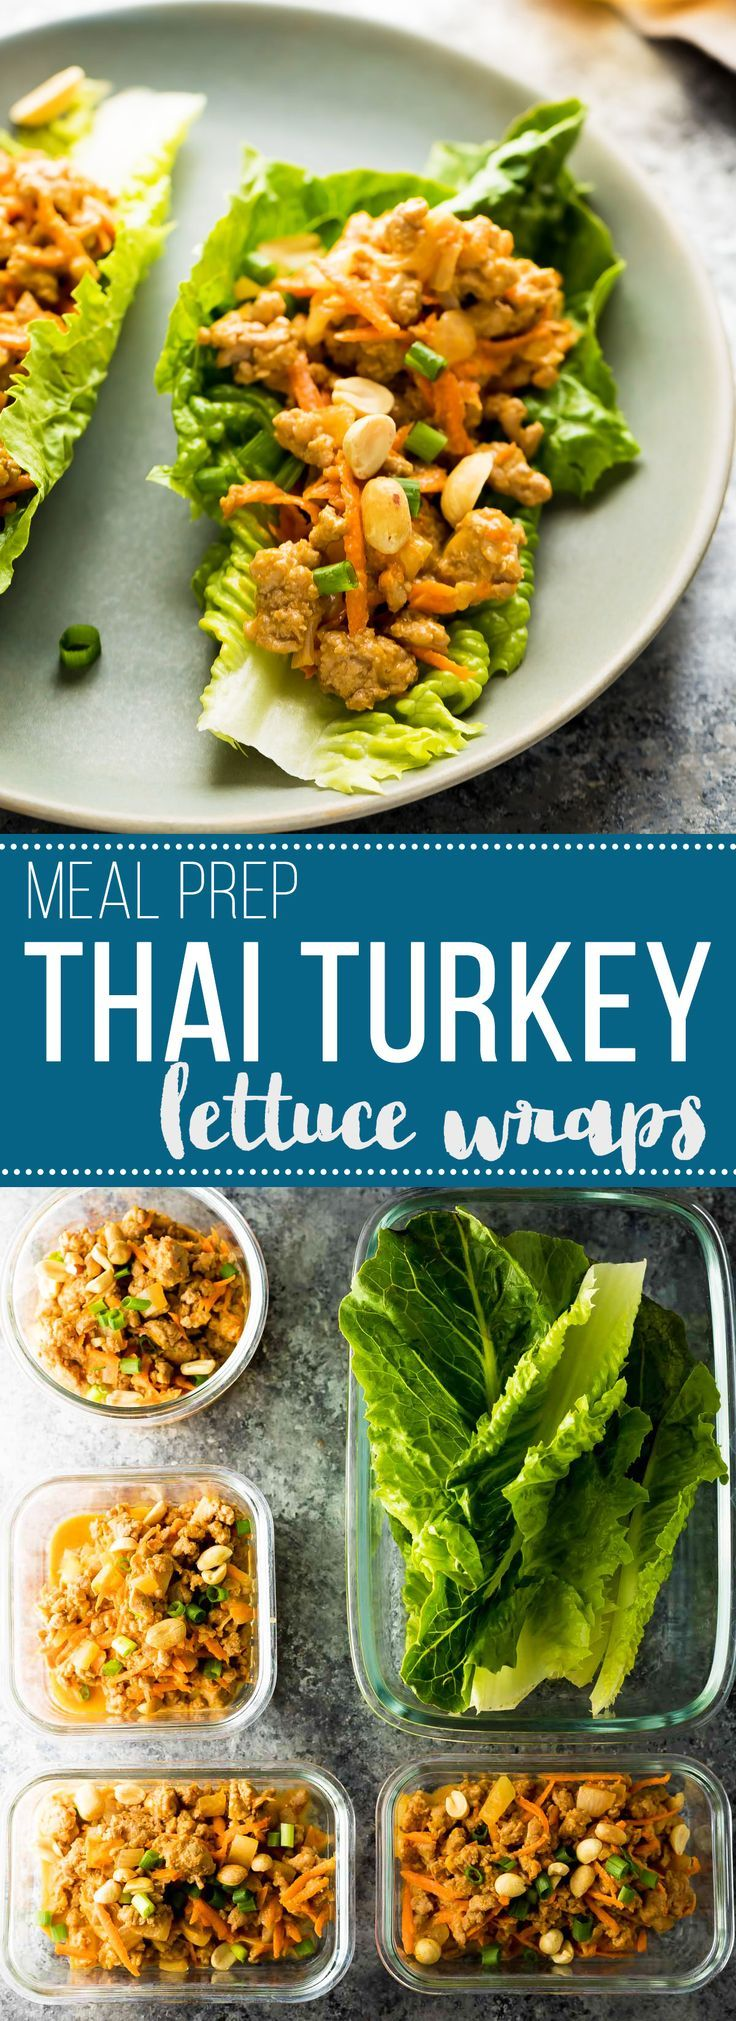 Photo of Thai Turkey Lettuce Wraps (+ Video) | Sweet Peas & Saffron